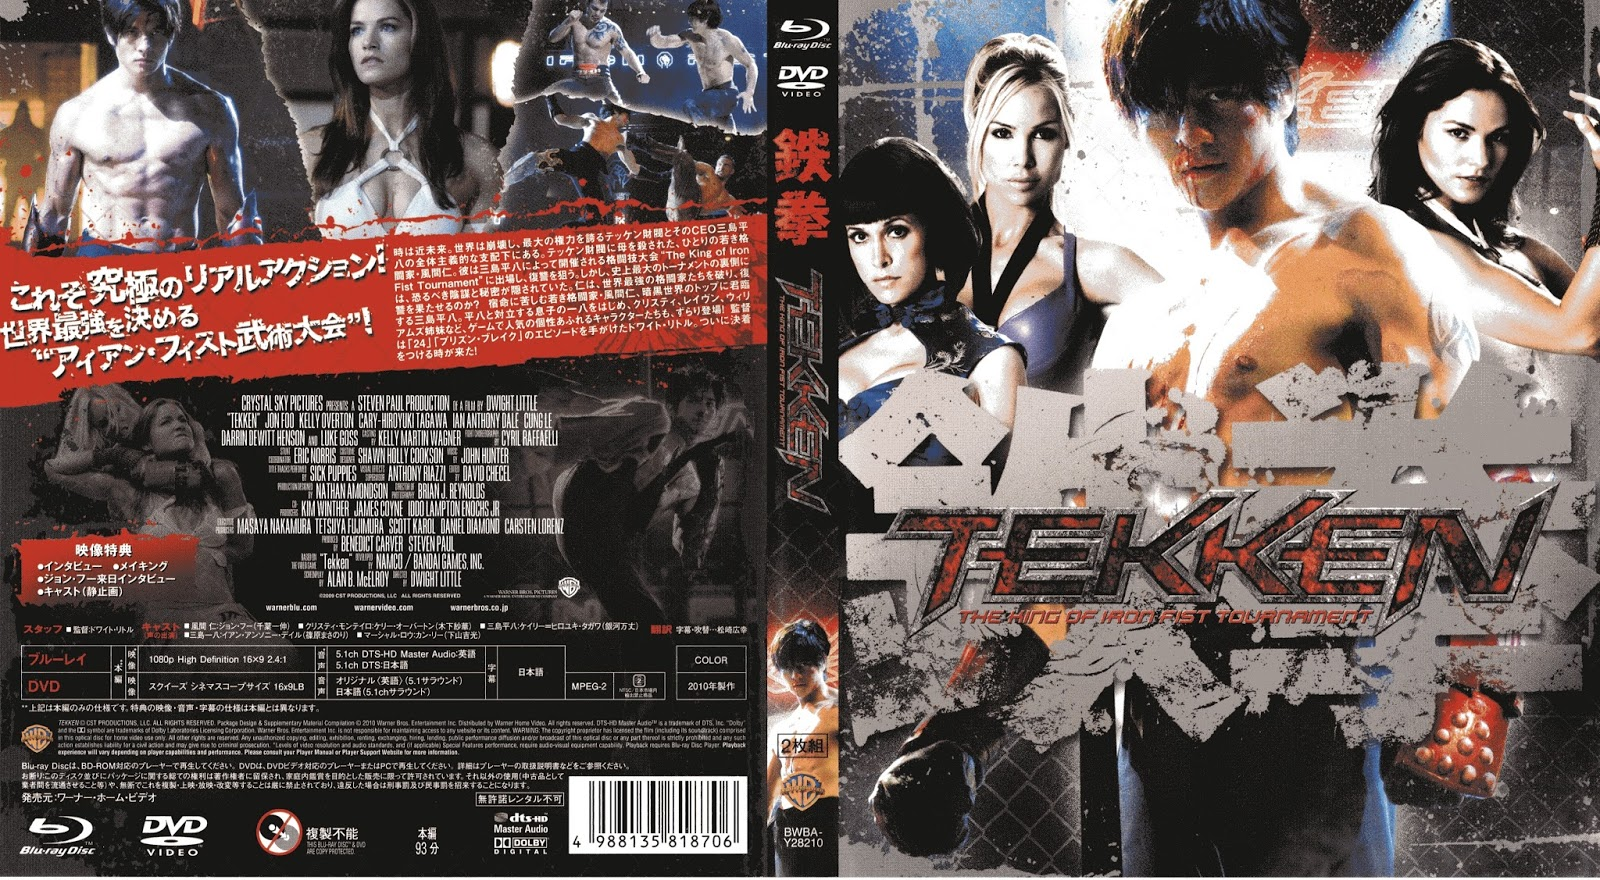 JAPAN ENCODINGS: [BLURAY] FOUND IN SOME BLURAY DISCS, JAPANESE ...